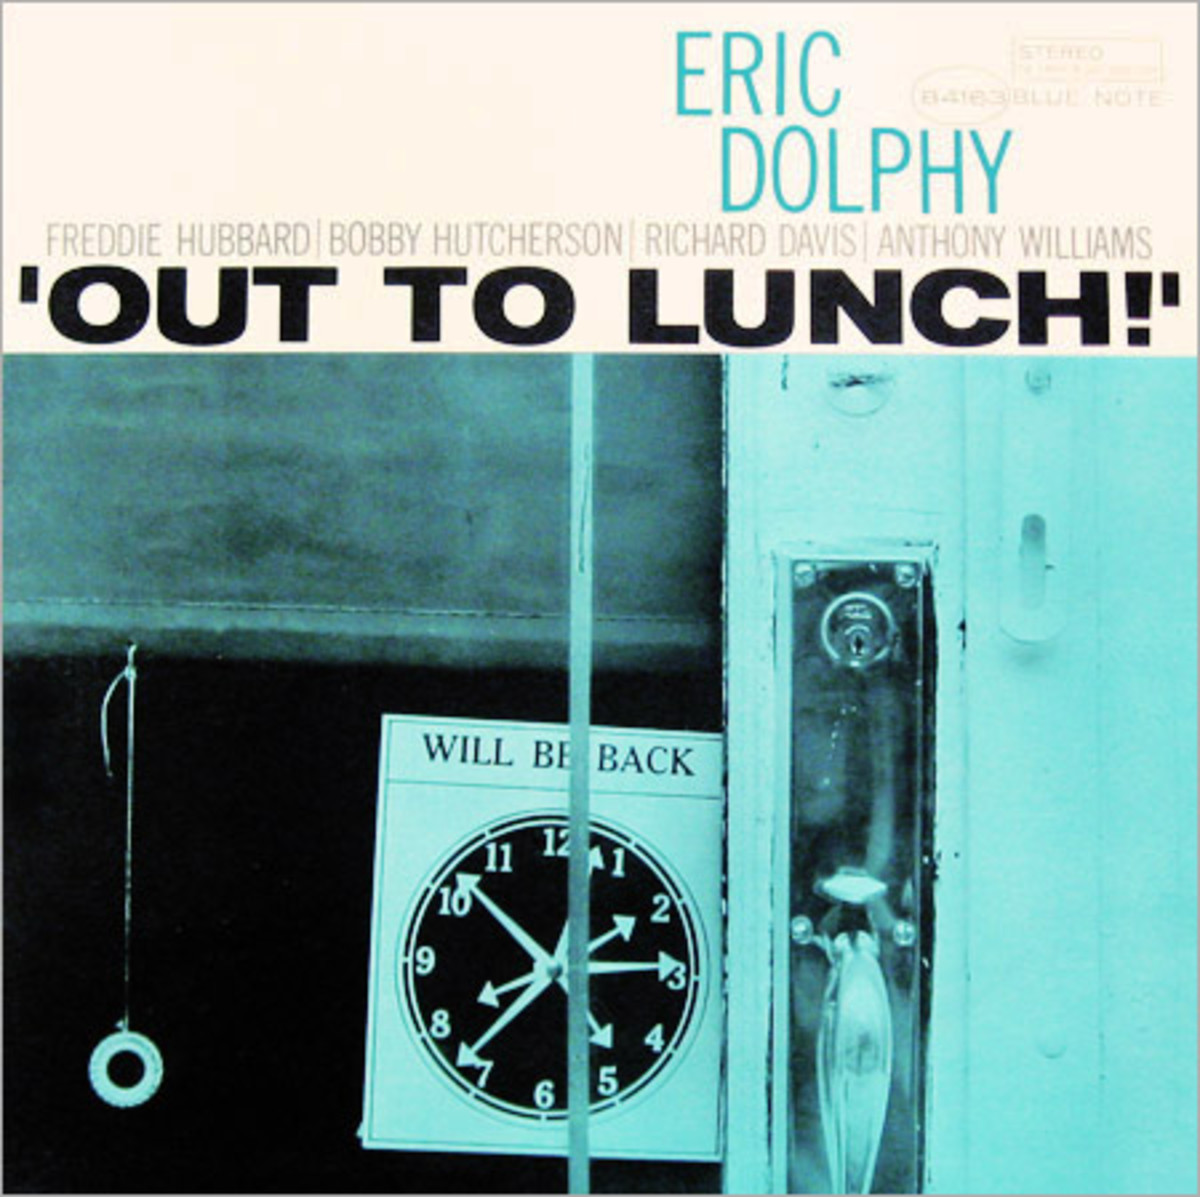 "Eric Dolphy ""Out To Lunch"" Blue Note Records 4163 12"" LP Vinyl Record (1964) Album Cover Design & Photo by Reid Miles"